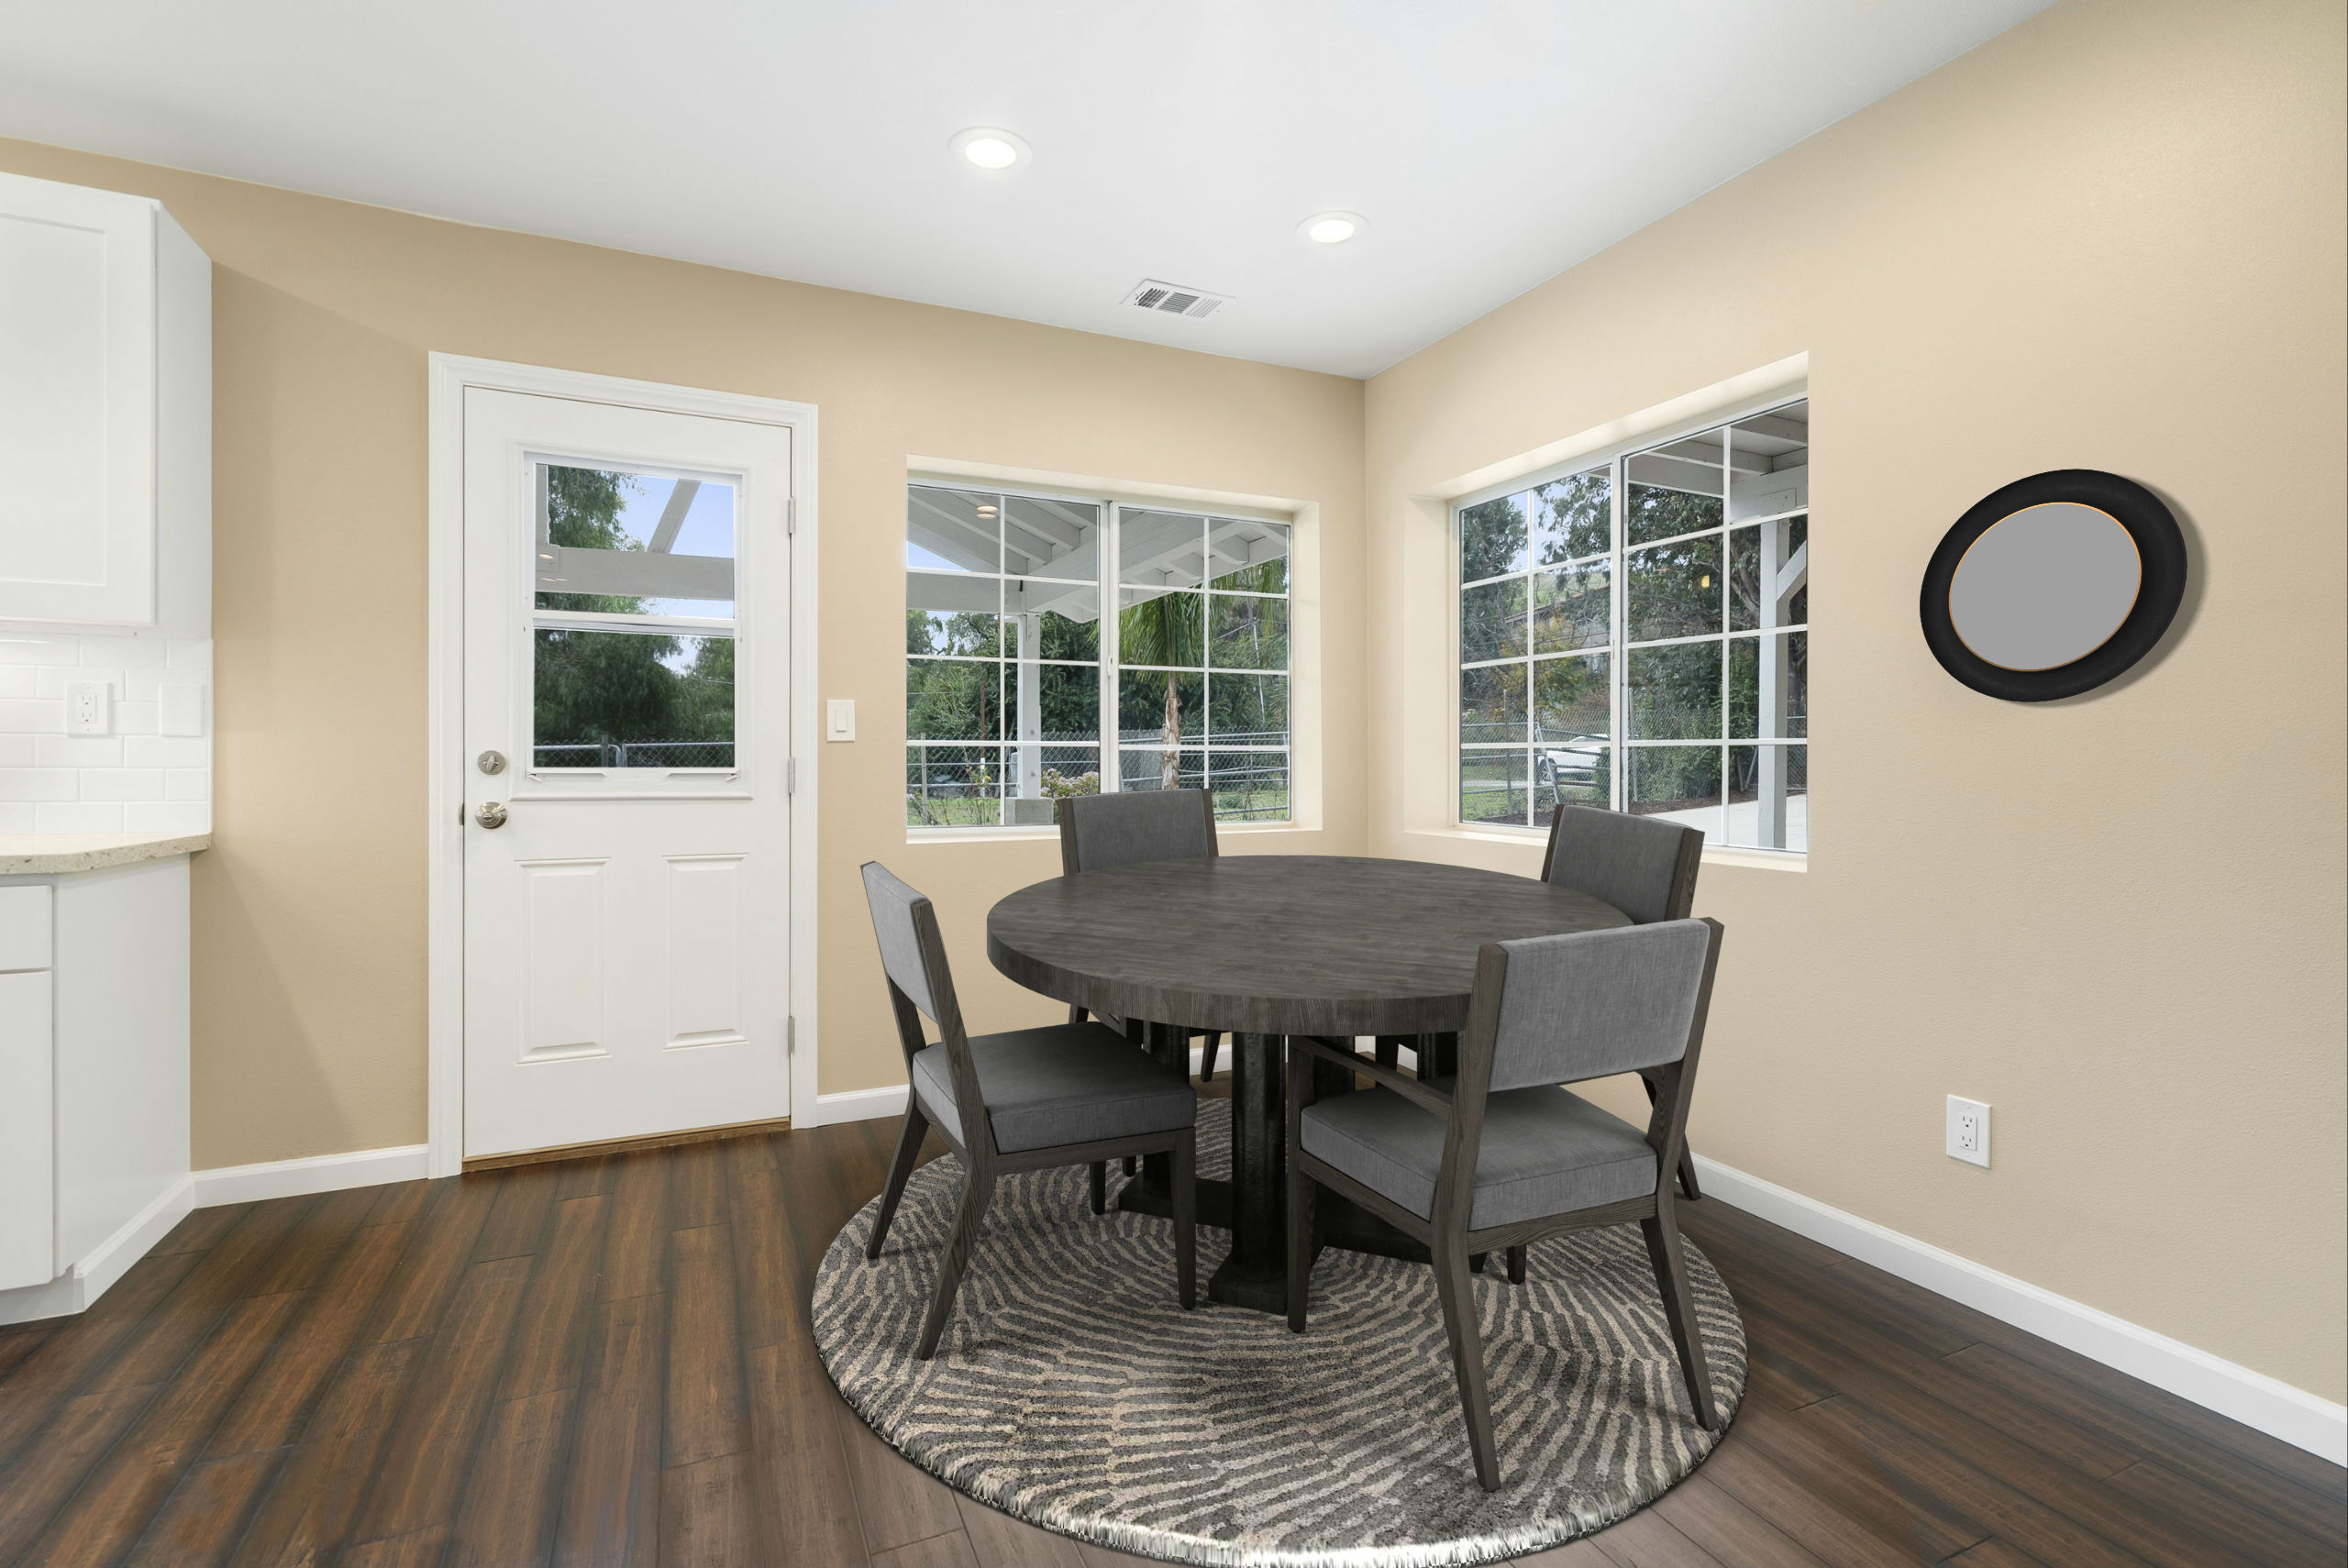 Dining area adjacent to kitchen, with brand new flooring, brand new recessed lighting, brand new door, and double pane windows. This photo is virtually staged.